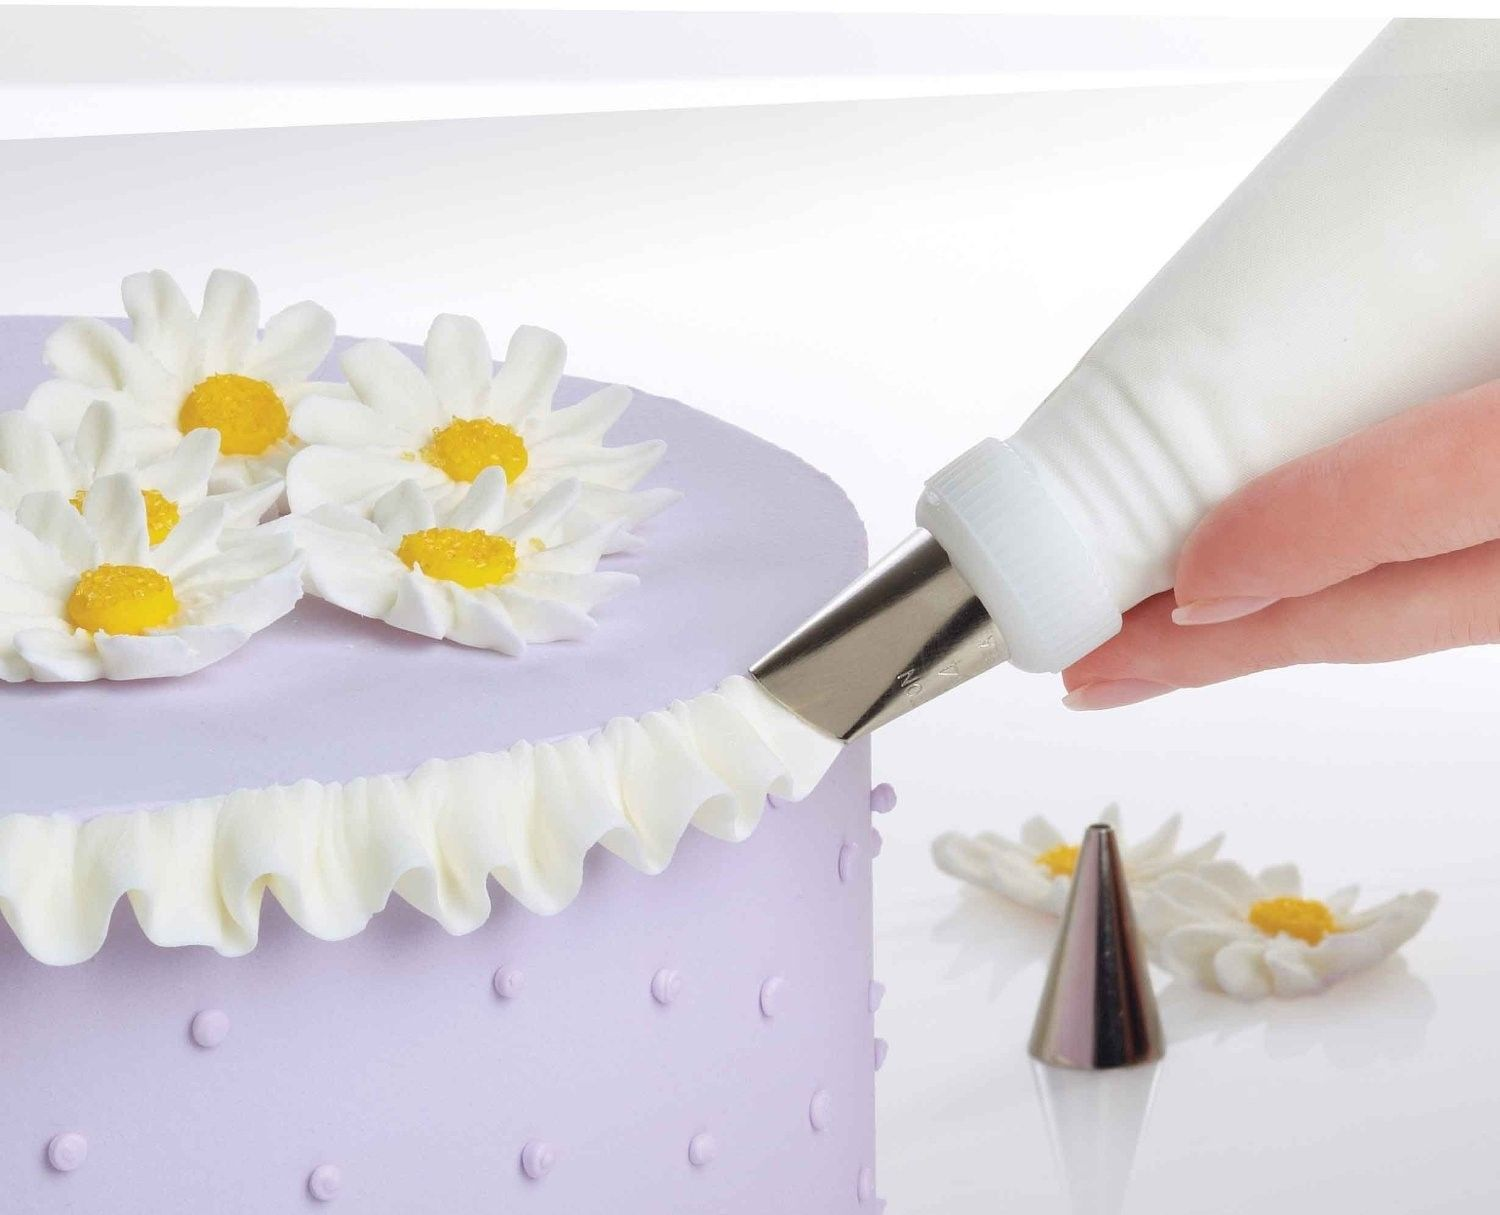 Wilton Professional Cake Decorating Set Kit Tips Case ...